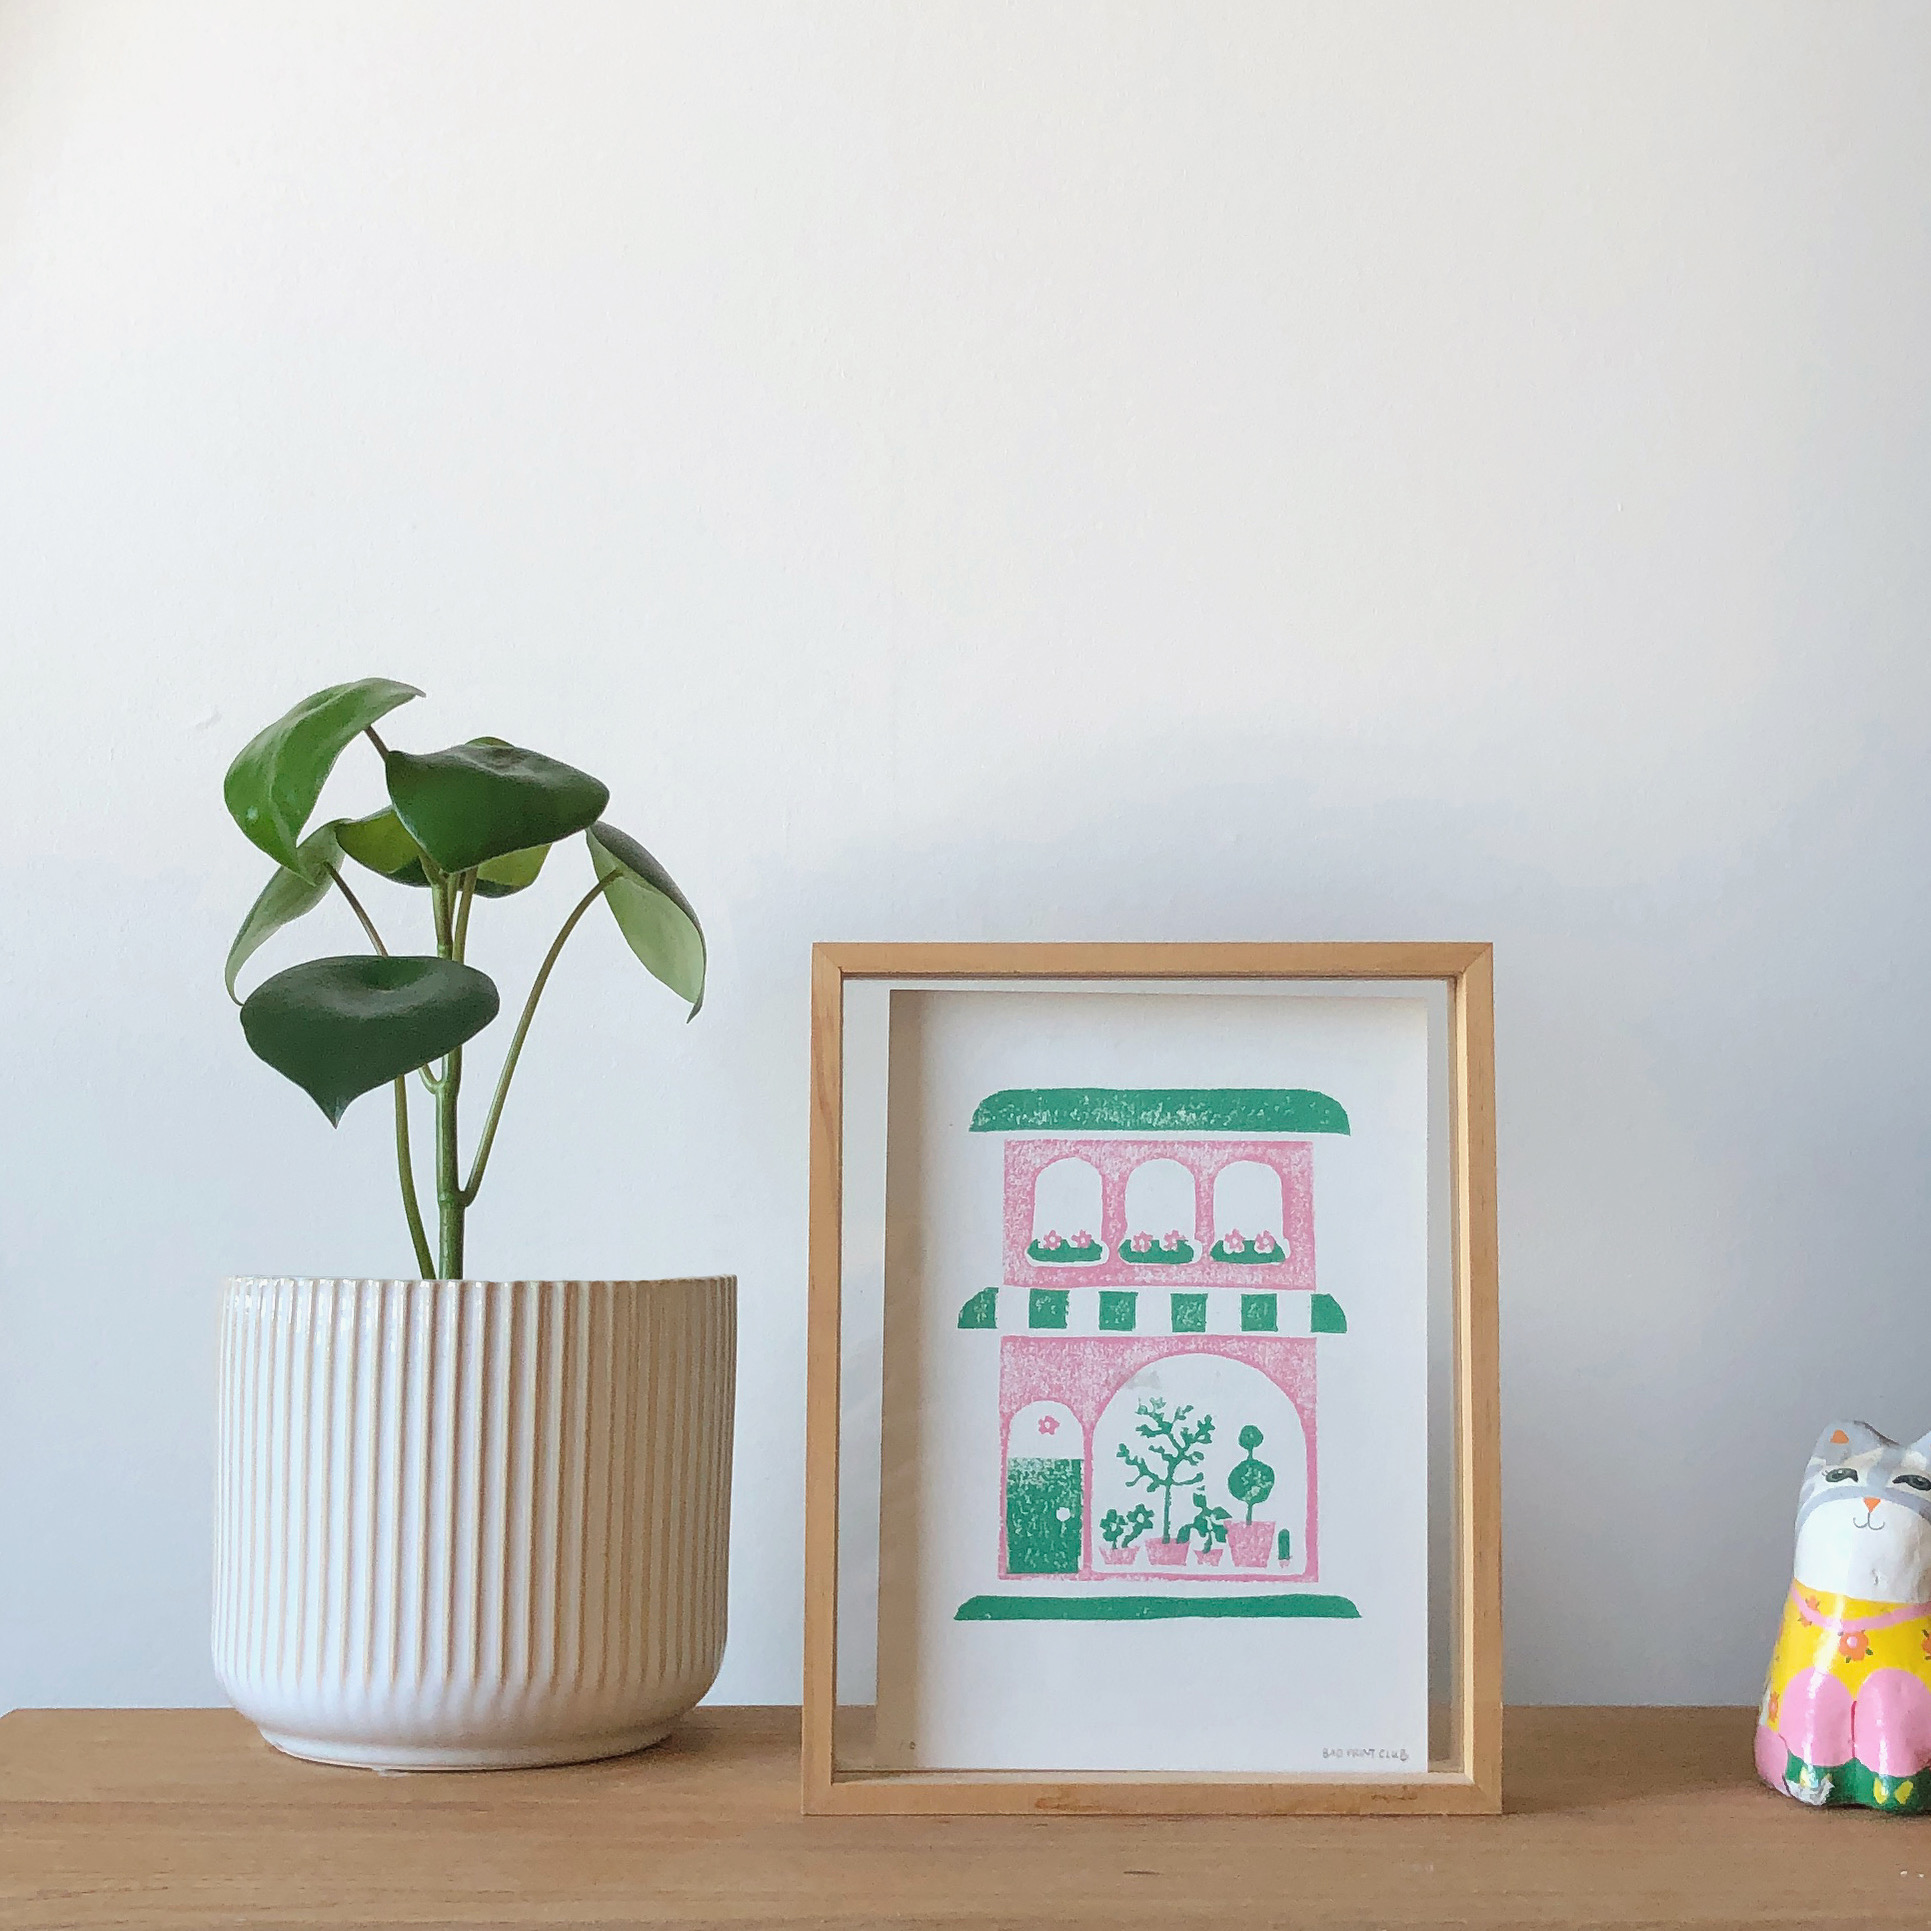 Pot plant next to a framed print of a pink and green shop front.